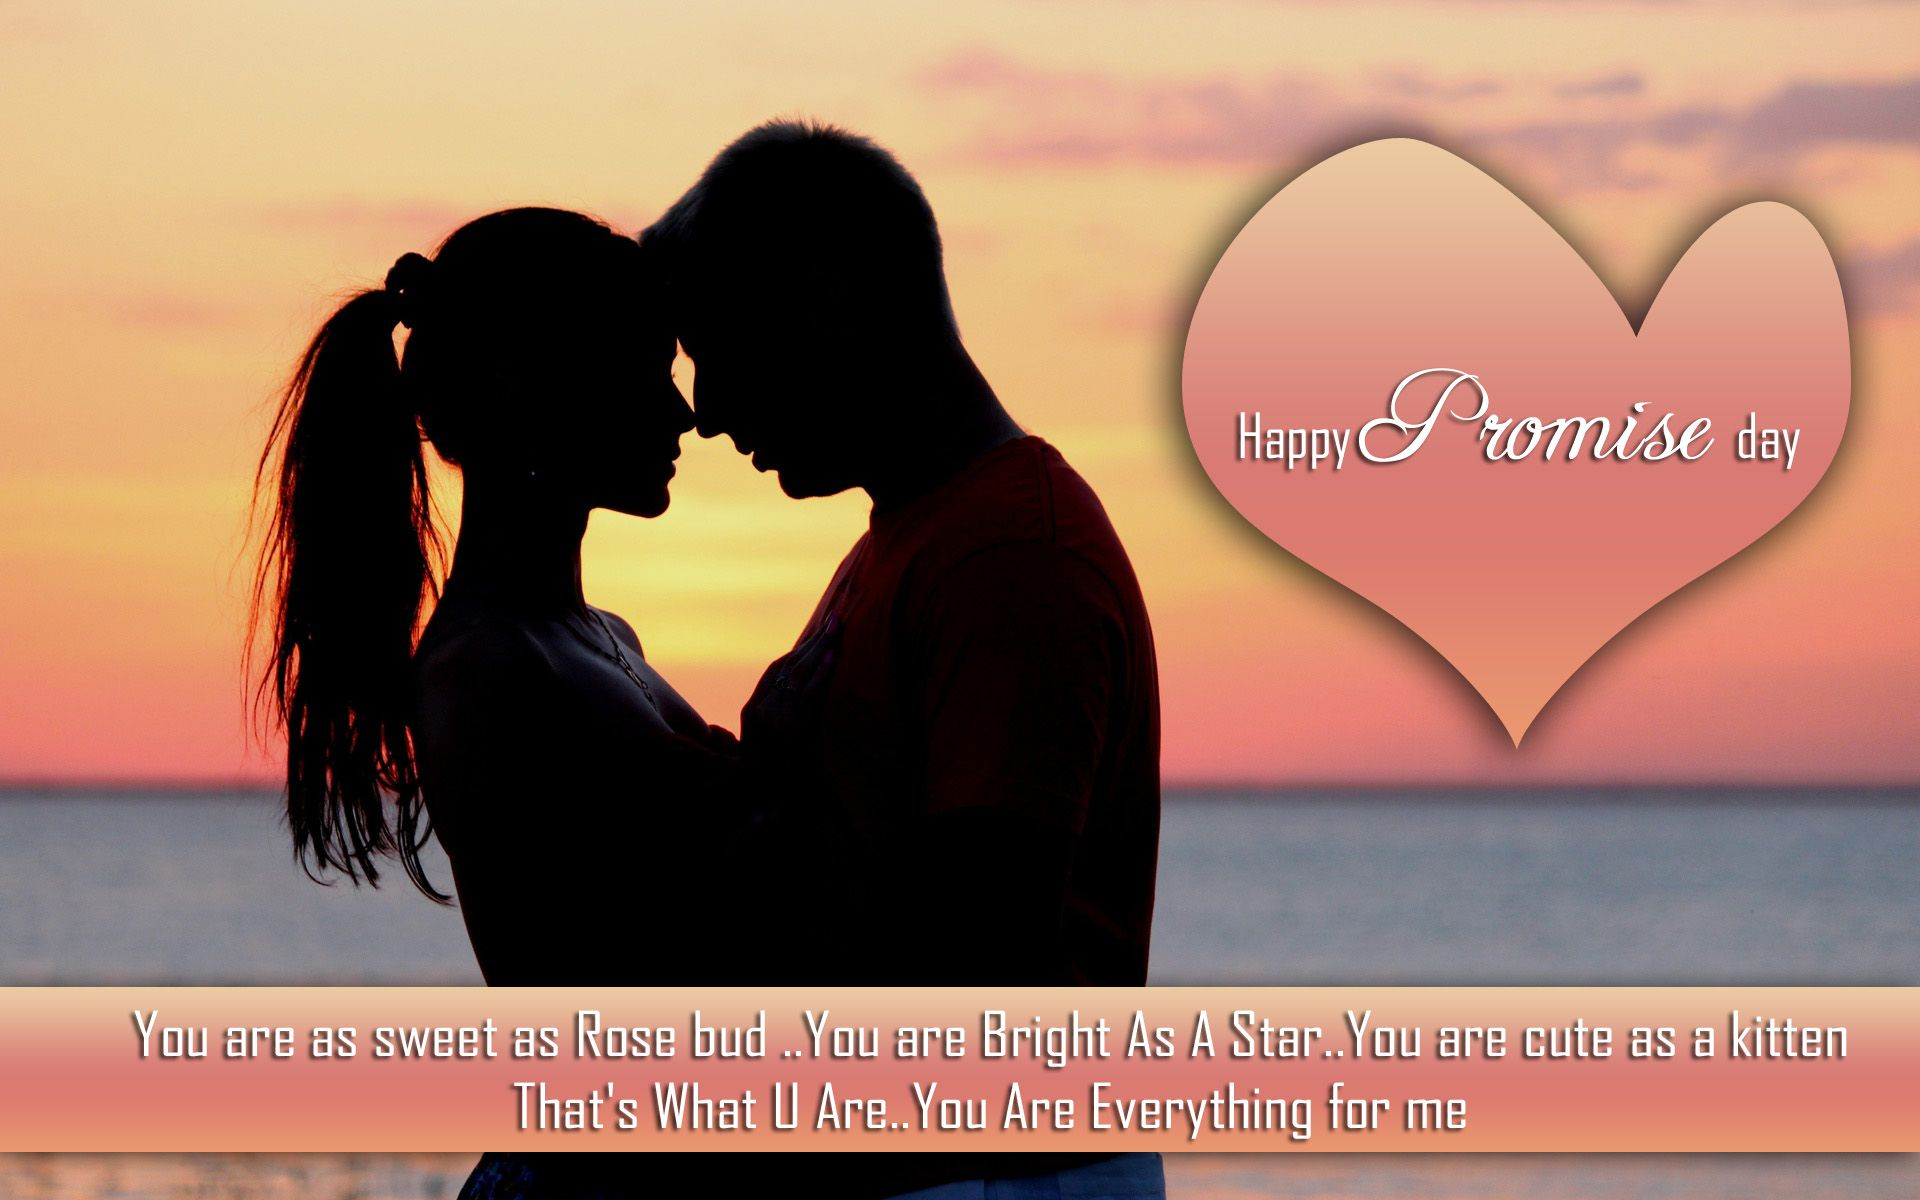 Download, Send, Promise Day Wishes, E-Greetings, Promise Day, Promise Day – 11 February, Happy Promise Day, Promise Day 2015, Loving Couples